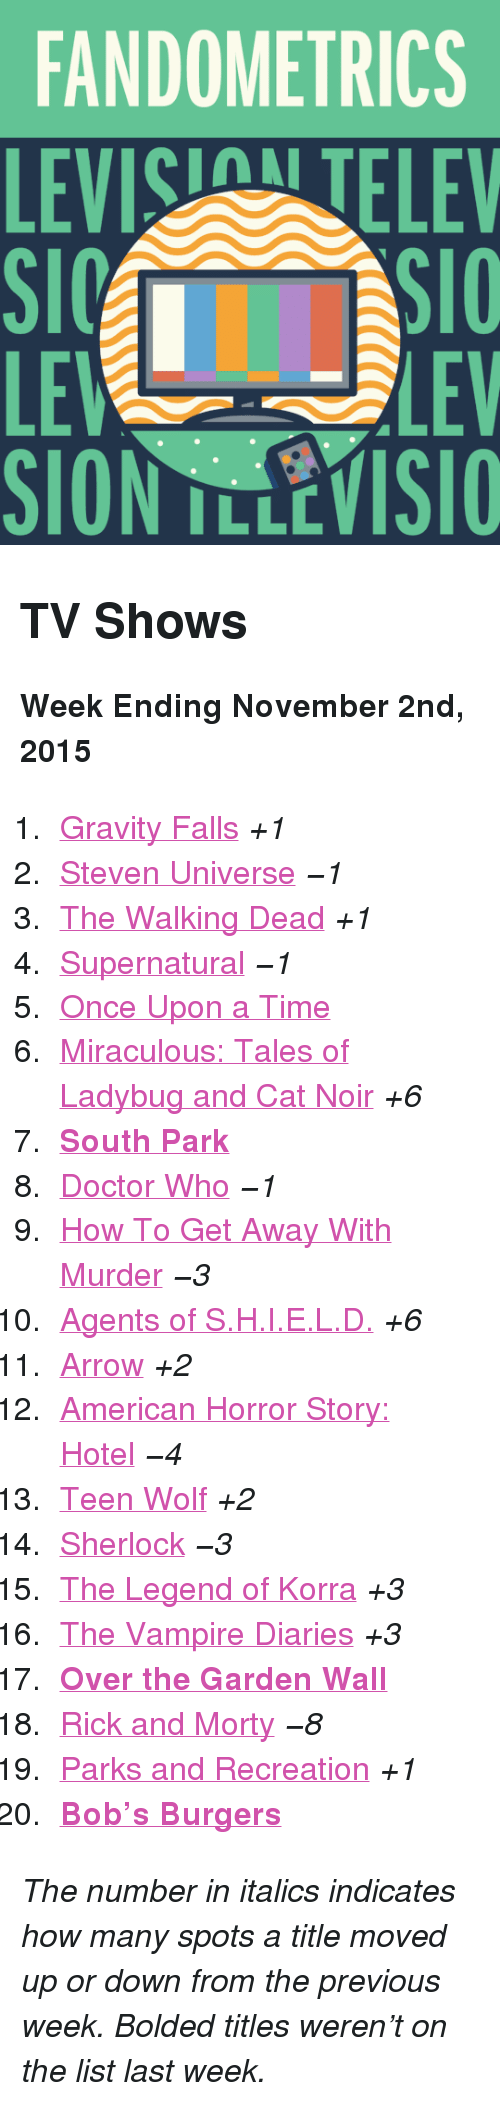 """Parks and Recreation: FANDOMETRICS  LEVIS TELEV  LE  SION TLLEVISIO  LEV <h2>TV Shows</h2><p><b>Week Ending November 2nd, 2015</b></p><ol><li><a href=""""http://www.tumblr.com/search/gravity%20falls"""">Gravity Falls</a><i>+1</i></li>  <li><a href=""""http://www.tumblr.com/search/steven%20universe"""">Steven Universe</a><i>−1</i></li>  <li><a href=""""http://www.tumblr.com/search/the%20walking%20dead"""">The Walking Dead</a><i>+1</i></li>  <li><a href=""""http://www.tumblr.com/search/supernatural"""">Supernatural</a><i>−1</i></li>  <li><a href=""""http://www.tumblr.com/search/ouat"""">Once Upon a Time</a></li>  <li><a href=""""http://www.tumblr.com/search/miraculous%20ladybug"""">Miraculous: Tales of Ladybug and Cat Noir</a><i>+6</i></li>  <li><a href=""""http://www.tumblr.com/search/south%20park""""><b>South Park</b></a></li>  <li><a href=""""http://www.tumblr.com/search/doctor%20who"""">Doctor Who</a><i>−1</i></li>  <li><a href=""""http://www.tumblr.com/search/how%20to%20get%20away%20with%20murder"""">How To Get Away With Murder</a><i>−3</i></li>  <li><a href=""""http://www.tumblr.com/search/agents%20of%20shield"""">Agents of S.H.I.E.L.D.</a><i>+6</i></li>  <li><a href=""""http://www.tumblr.com/search/arrow"""">Arrow</a><i>+2</i></li>  <li><a href=""""http://www.tumblr.com/search/american%20horror%20story%20hotel"""">American Horror Story: Hotel</a><i>−4</i></li>  <li><a href=""""http://www.tumblr.com/search/teen%20wolf"""">Teen Wolf</a><i>+2</i></li>  <li><a href=""""http://www.tumblr.com/search/sherlock"""">Sherlock</a><i>−3</i></li>  <li><a href=""""http://www.tumblr.com/search/legend%20of%20korra"""">The Legend of Korra</a><i>+3</i></li>  <li><a href=""""http://www.tumblr.com/search/the%20vampire%20diaries"""">The Vampire Diaries</a><i>+3</i></li>  <li><a href=""""http://www.tumblr.com/search/over%20the%20garden%20wall""""><b>Over the Garden Wall</b></a></li>  <li><a href=""""http://www.tumblr.com/search/rick%20and%20morty"""">Rick and Morty</a><i>−8</i></li>  <li><a href=""""http://www.tumblr.com/search/parks%20and%20recreation"""">Parks and Recreation</a><i>+1</i></li> """